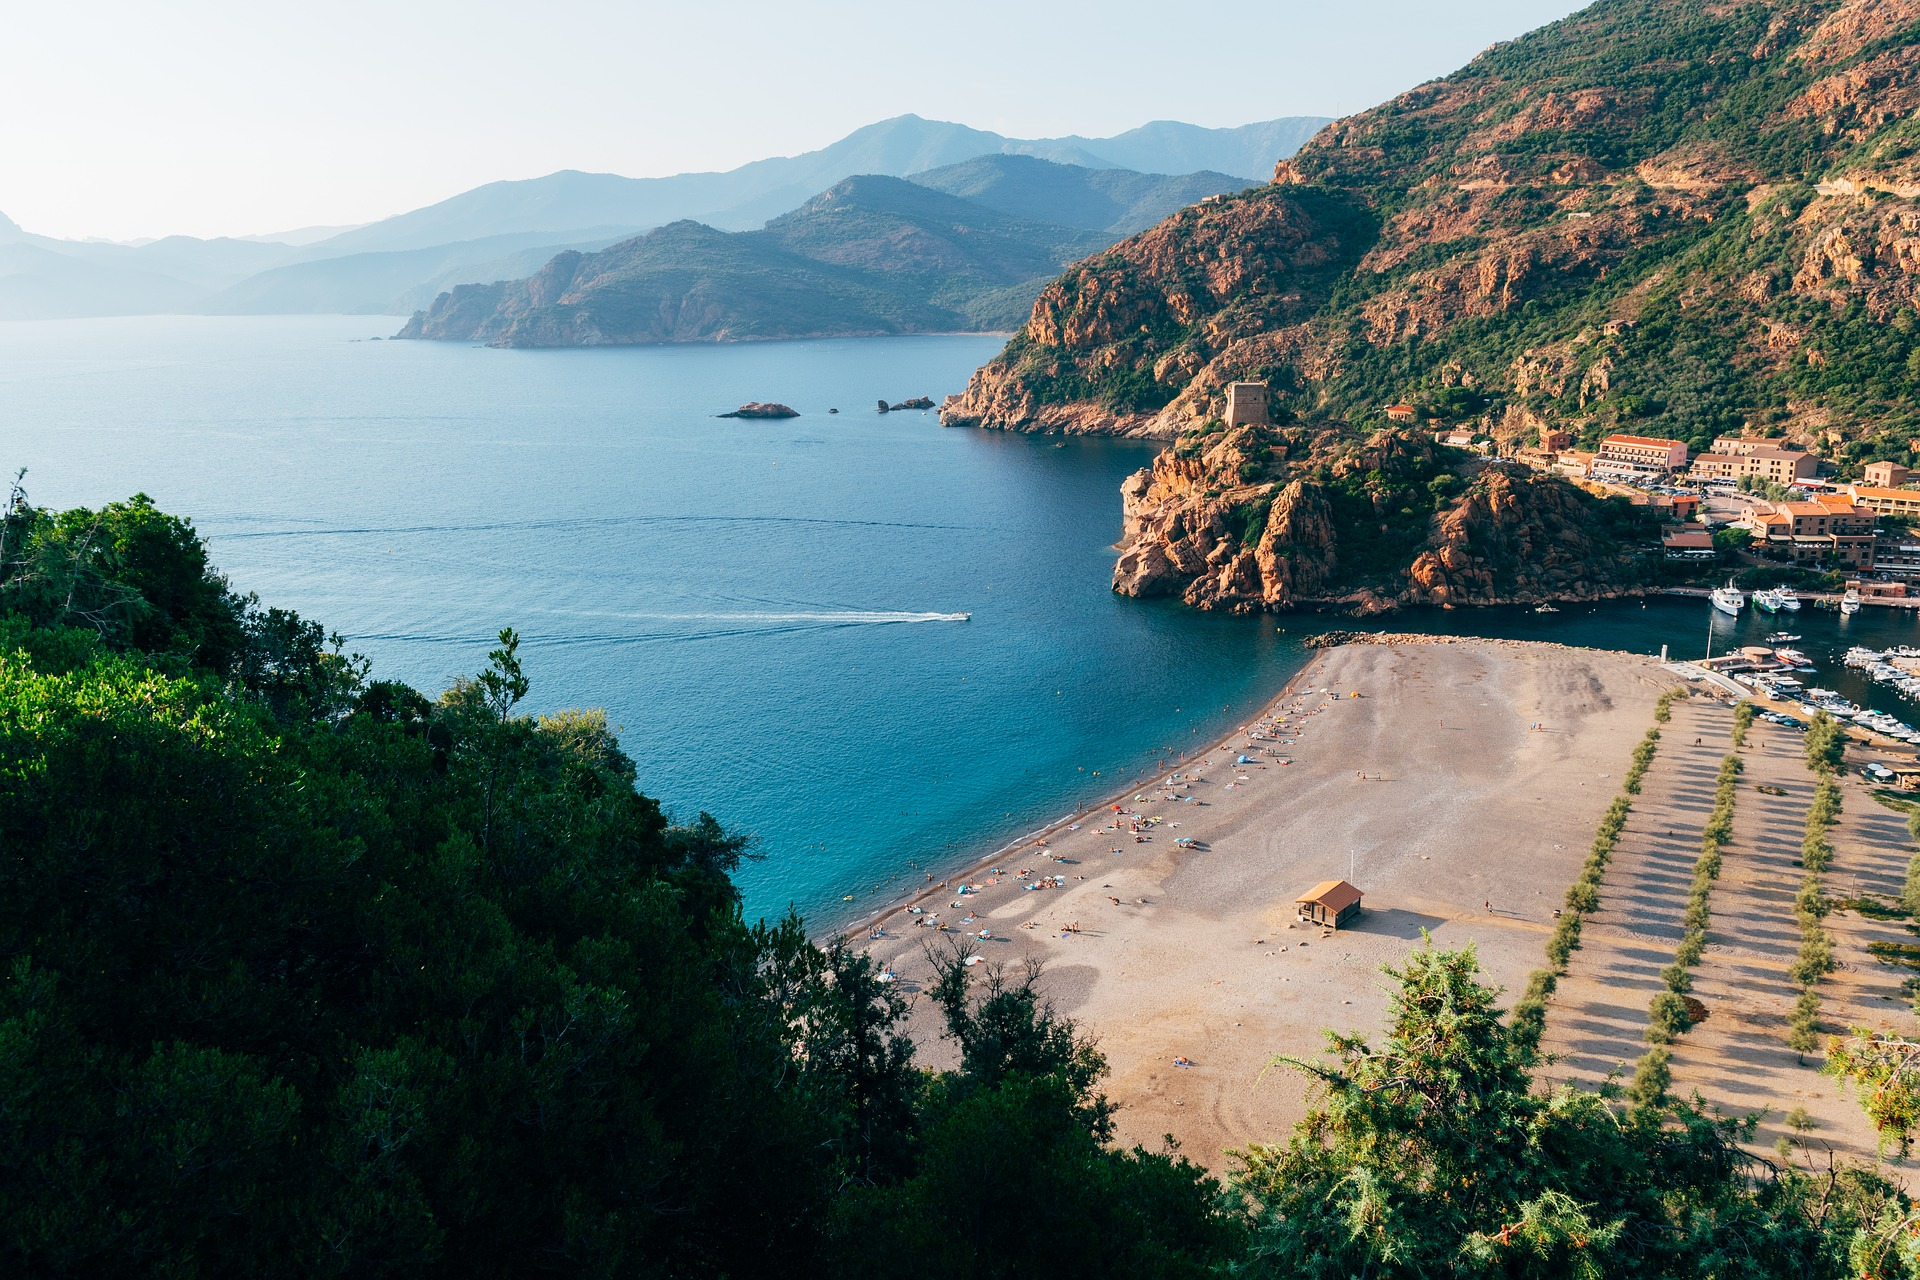 The stunning Mediterranean islands Moutains spill into the sea in Corsica